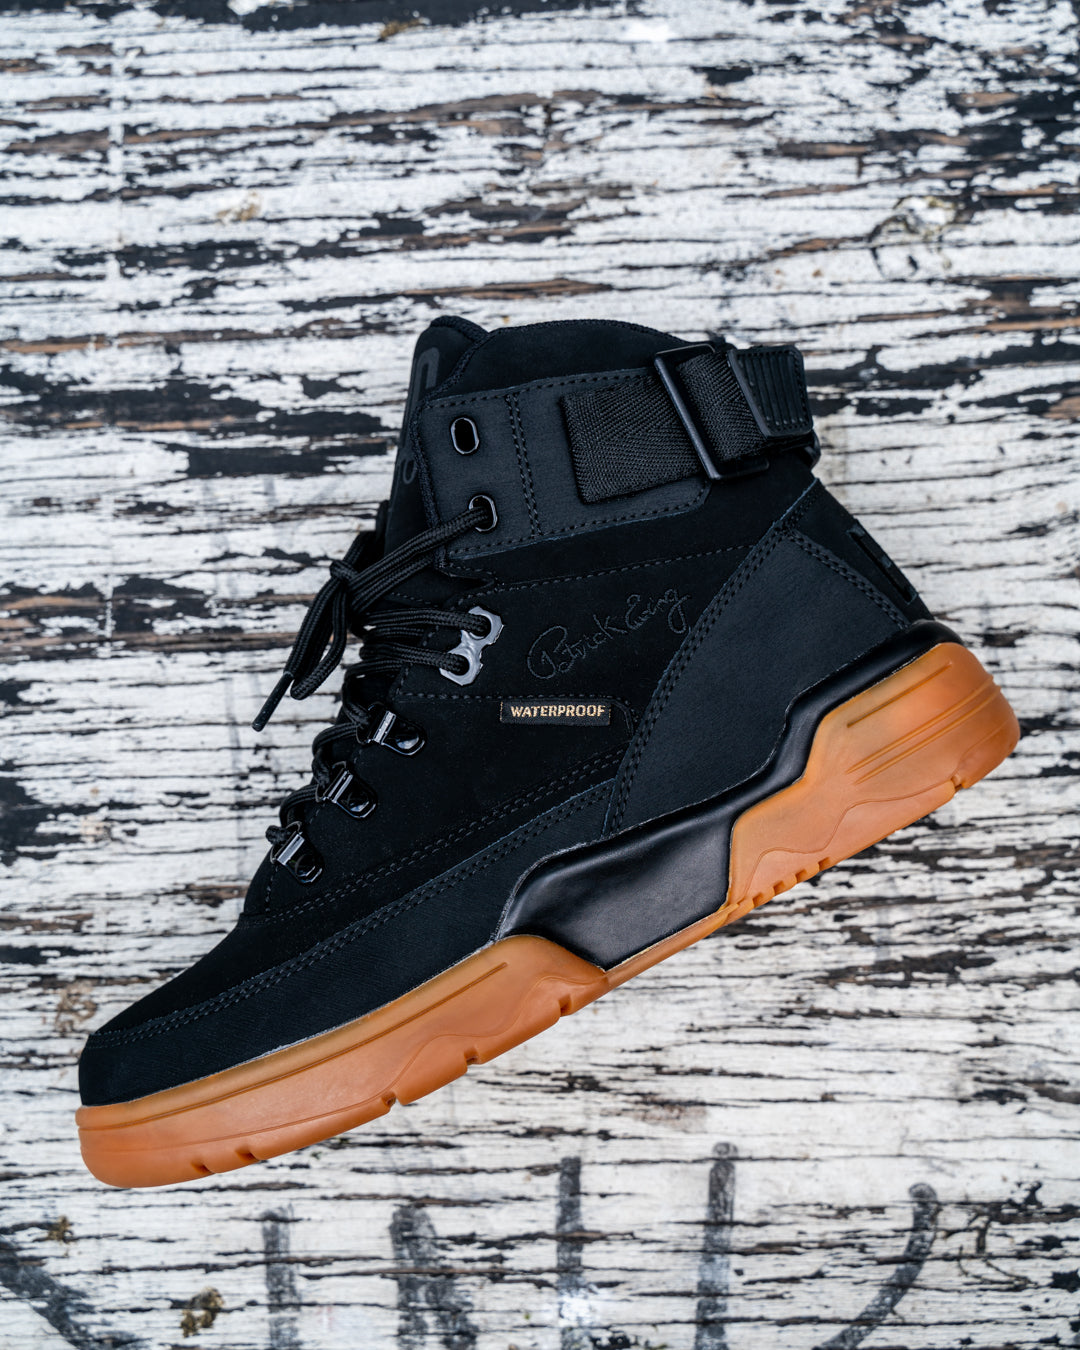 33 HI WINTER Black/Gum